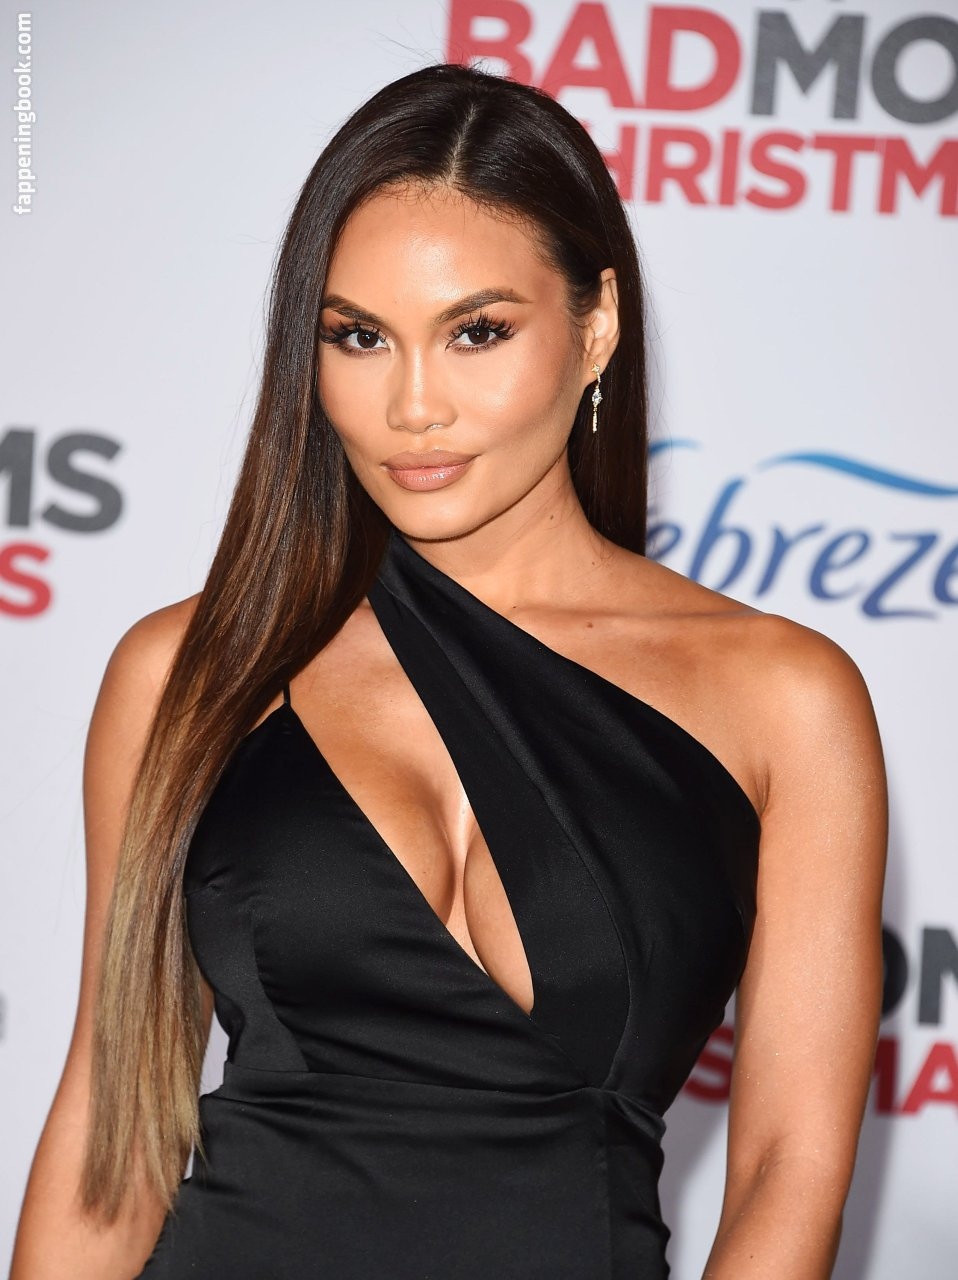 Daphne Joy Nude, Sexy, The Fappening, Uncensored - Photo